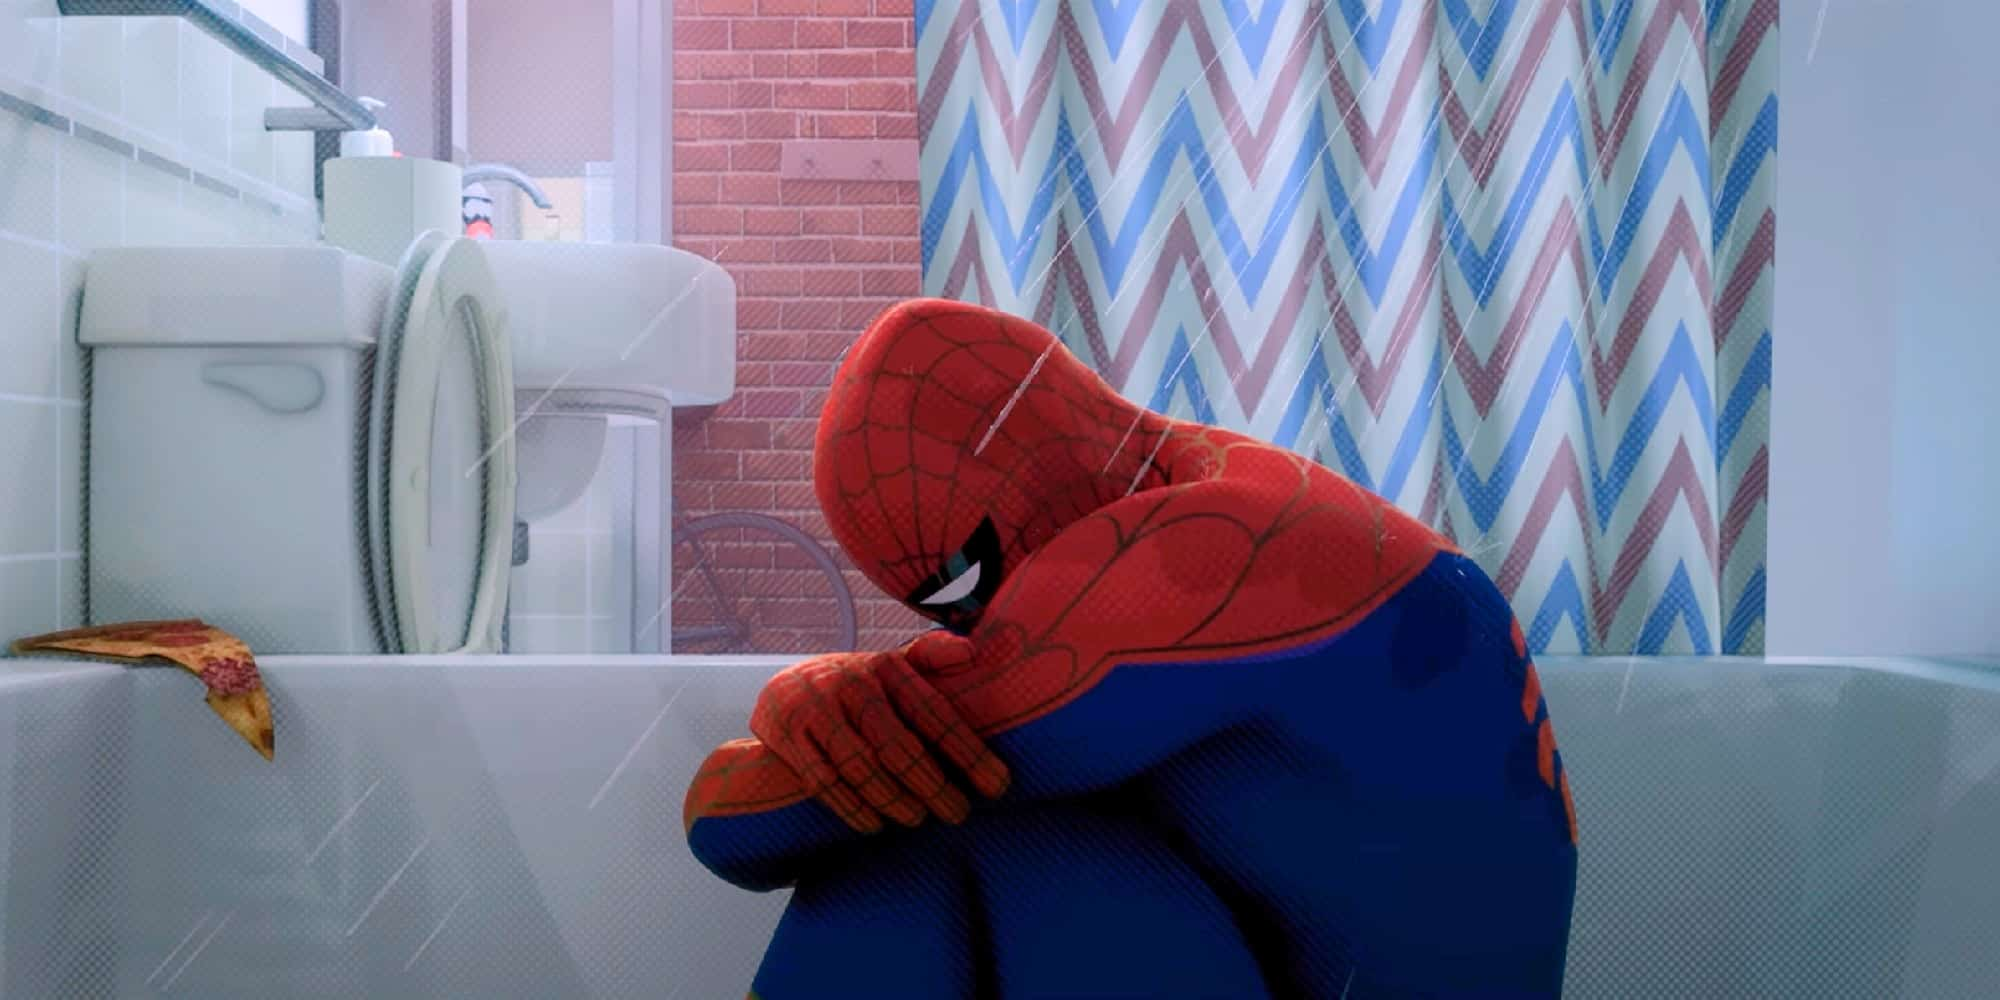 Blue Monday Superheroes Depression Spider-Man Into the Spider-Verse Peter B. Parker Featured